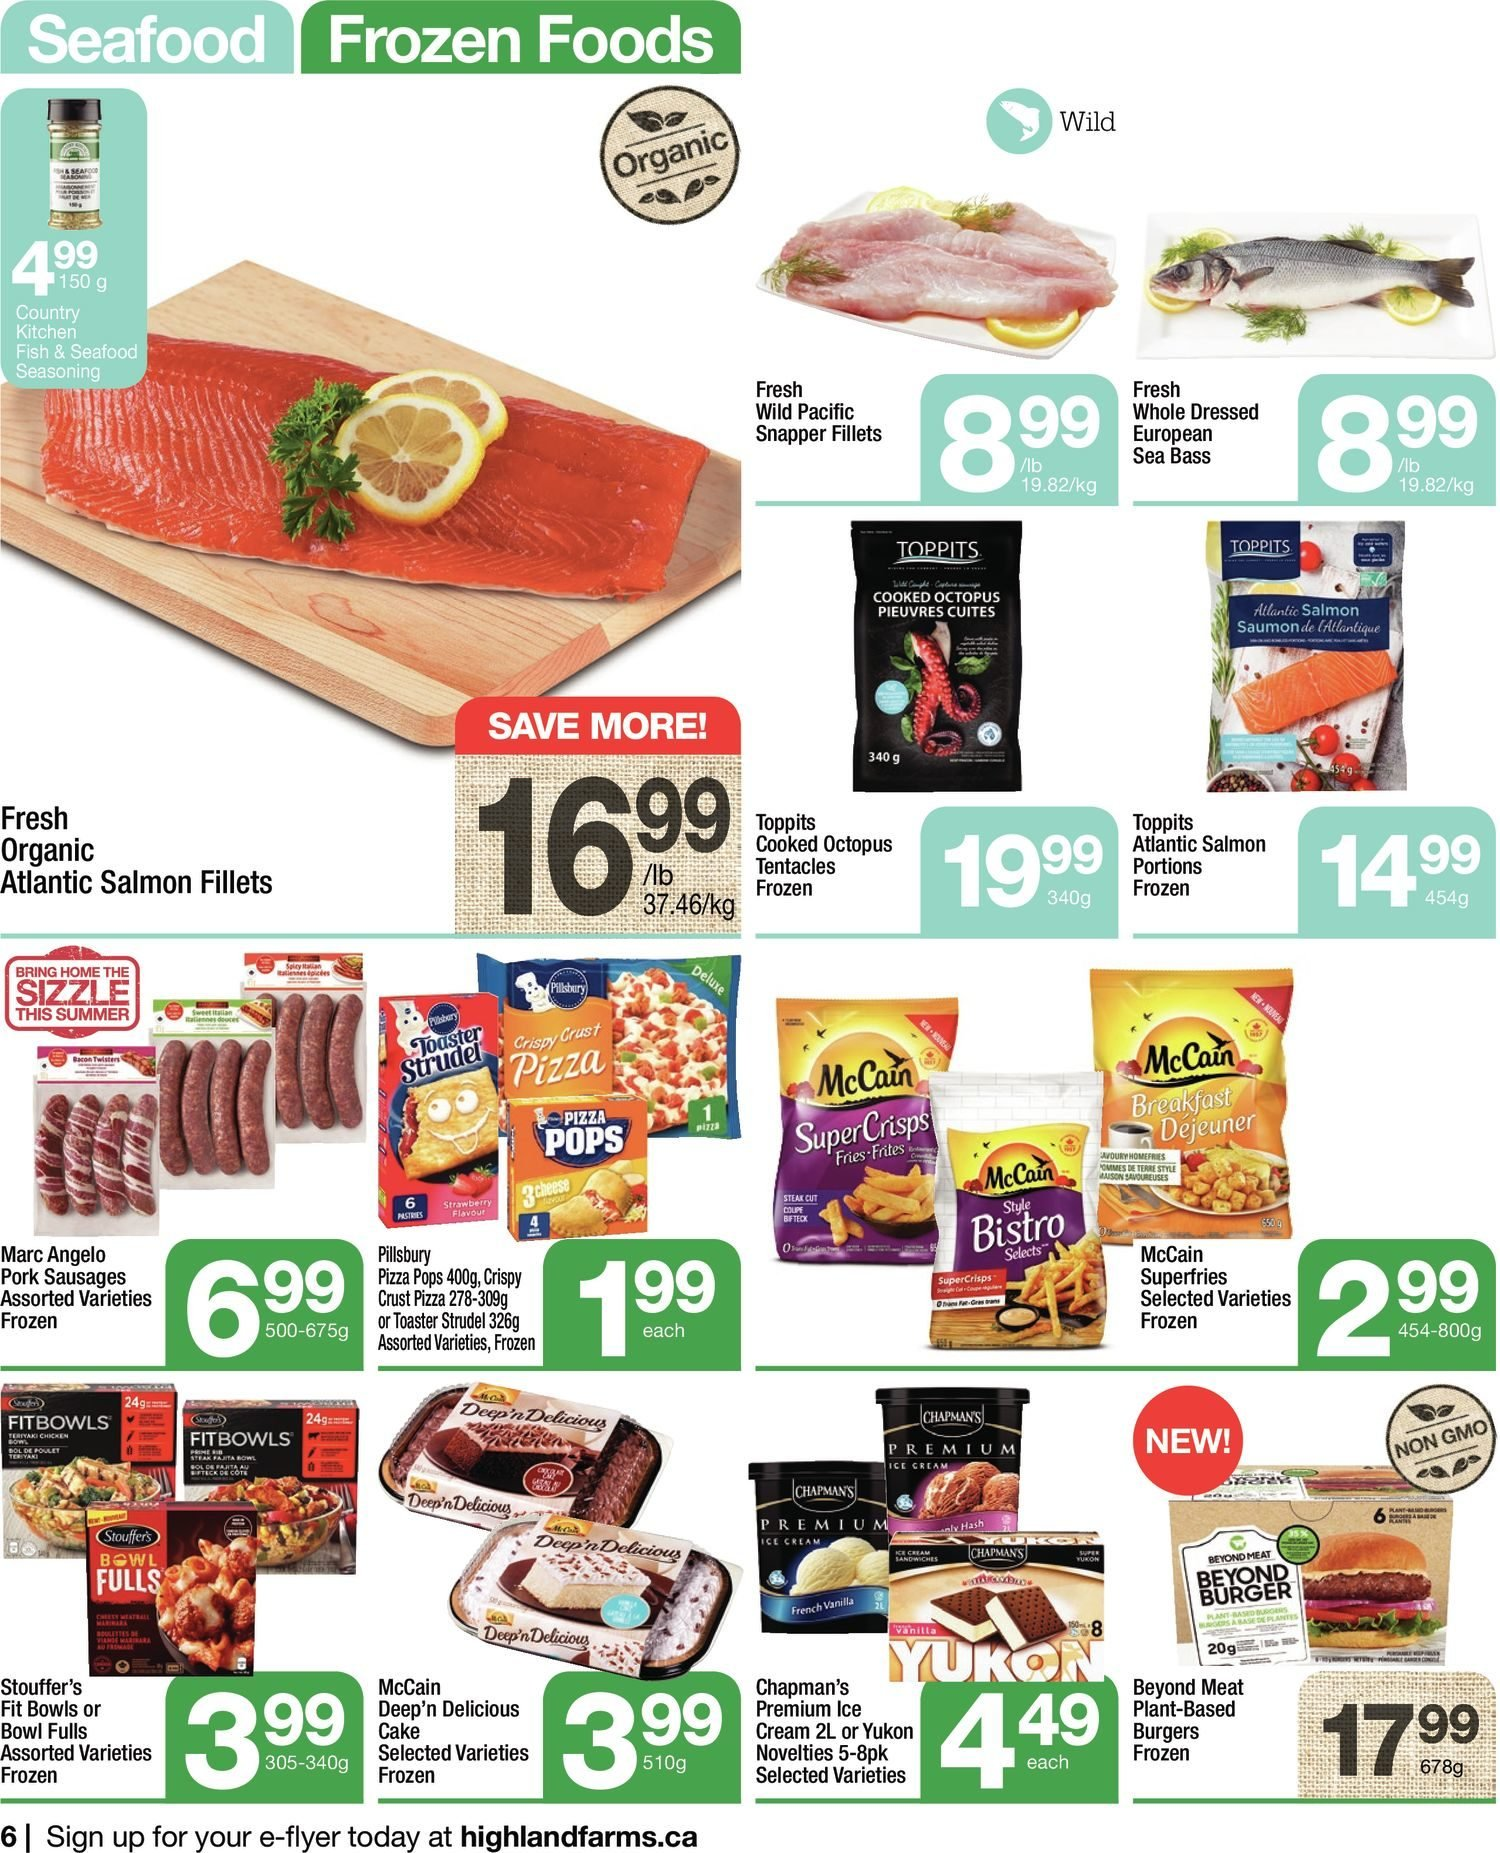 Highland Farms - Weekly Flyer Specials - Page 6